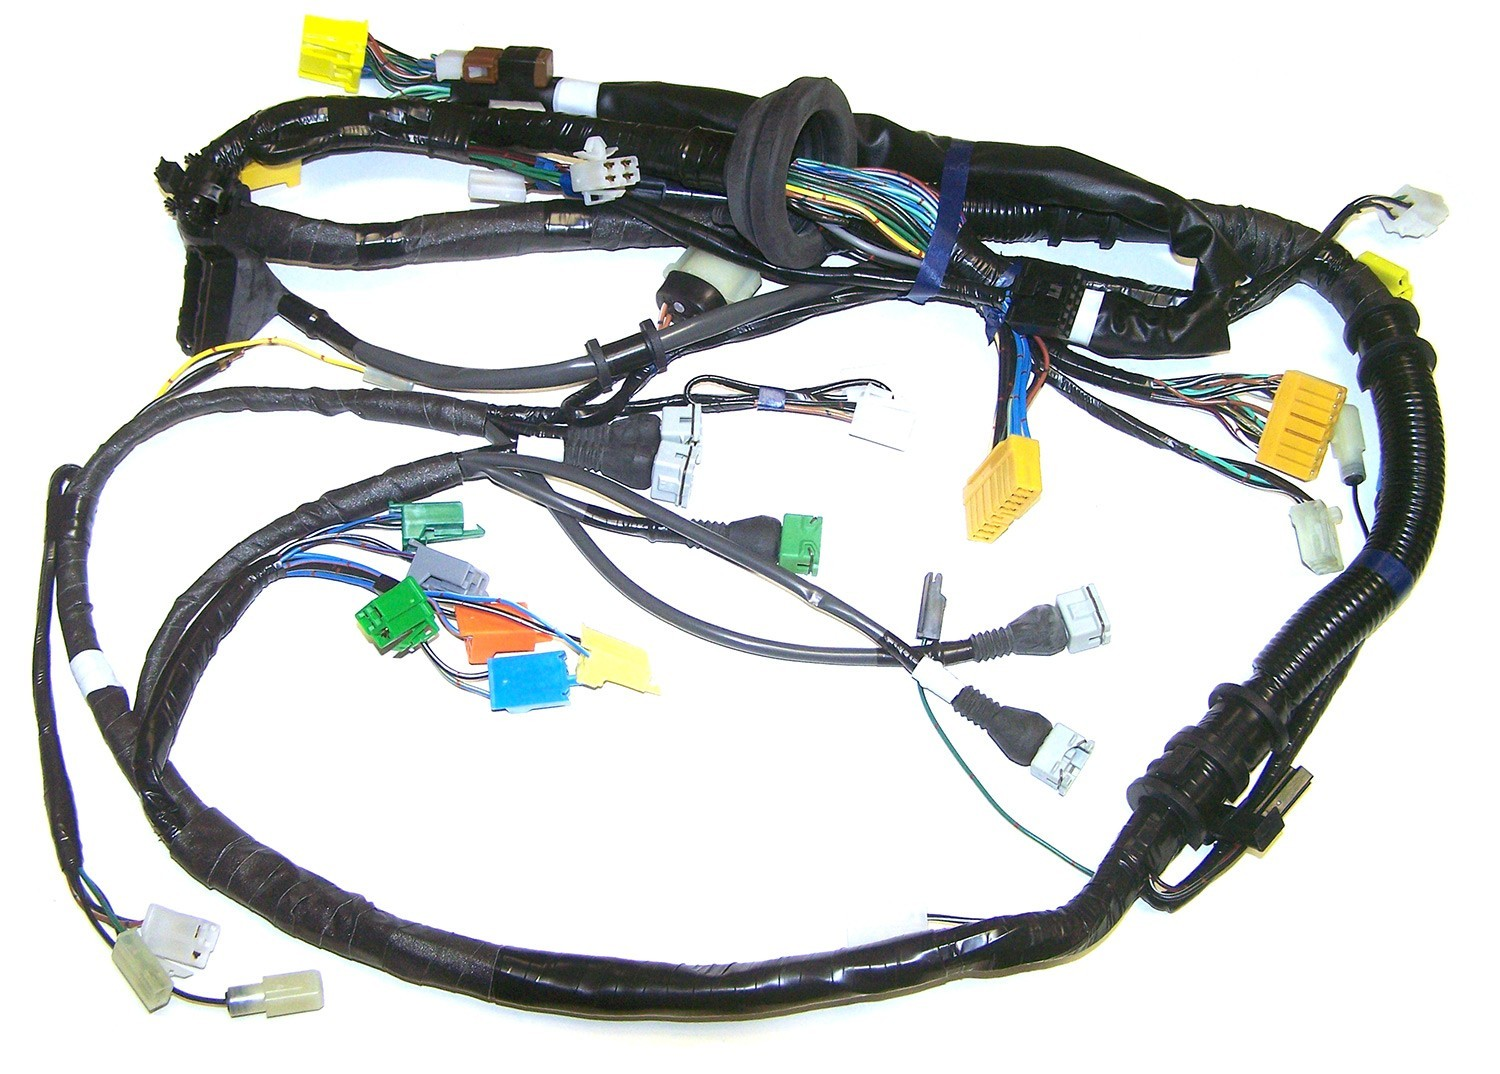 S13 Wiring Harness Rx7 Diagram Schema Img